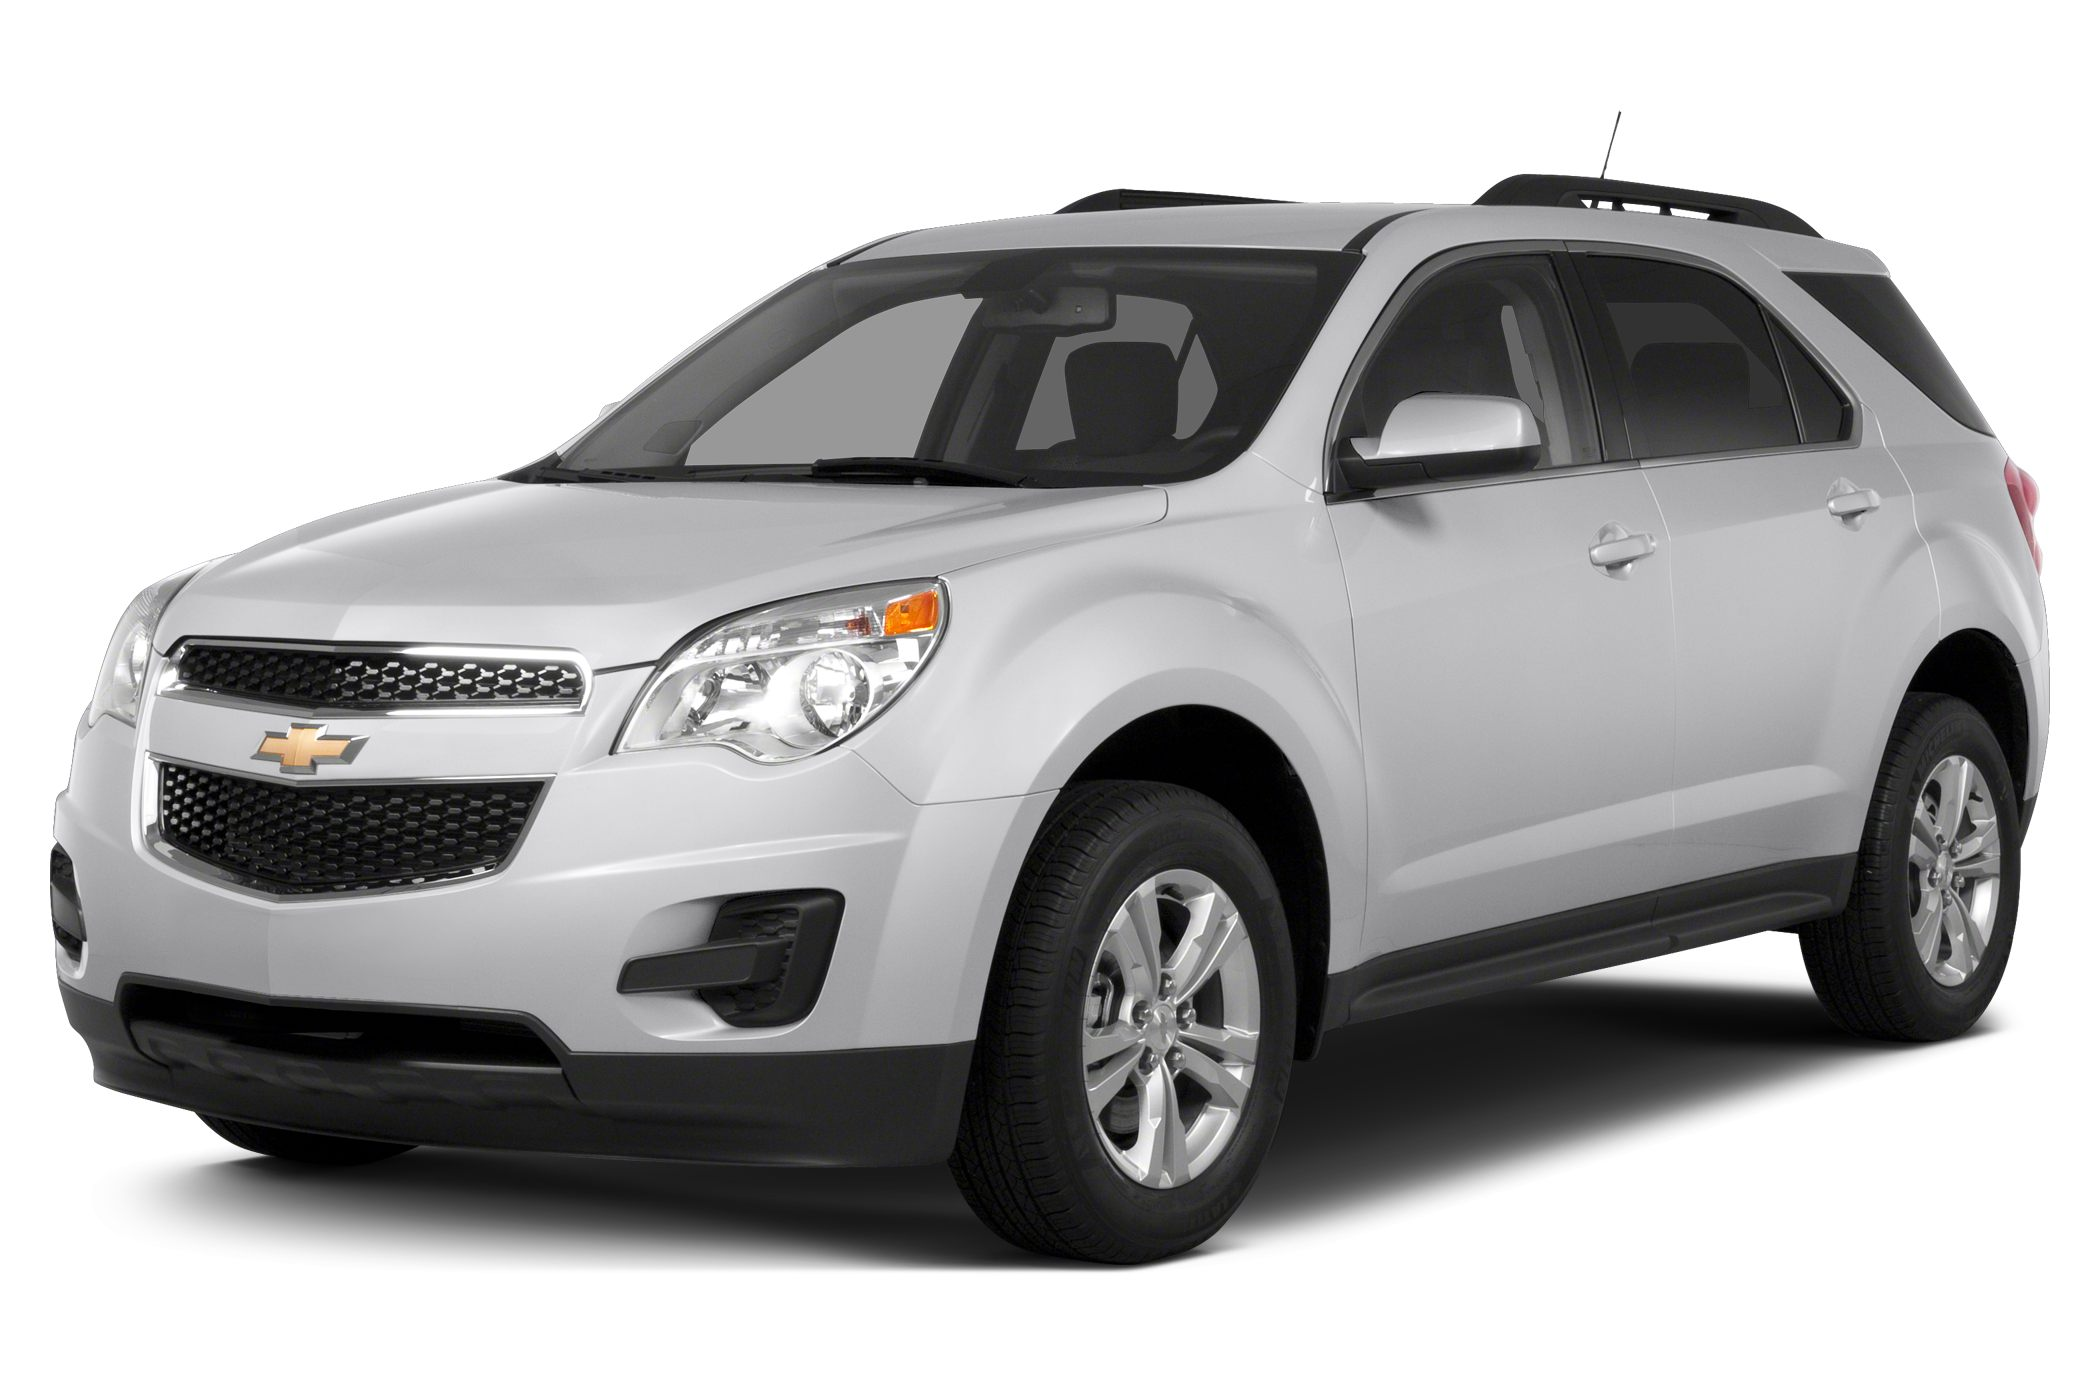 2015 Chevrolet Equinox 1LT SUV for sale in Lucedale for $24,840 with 0 miles.